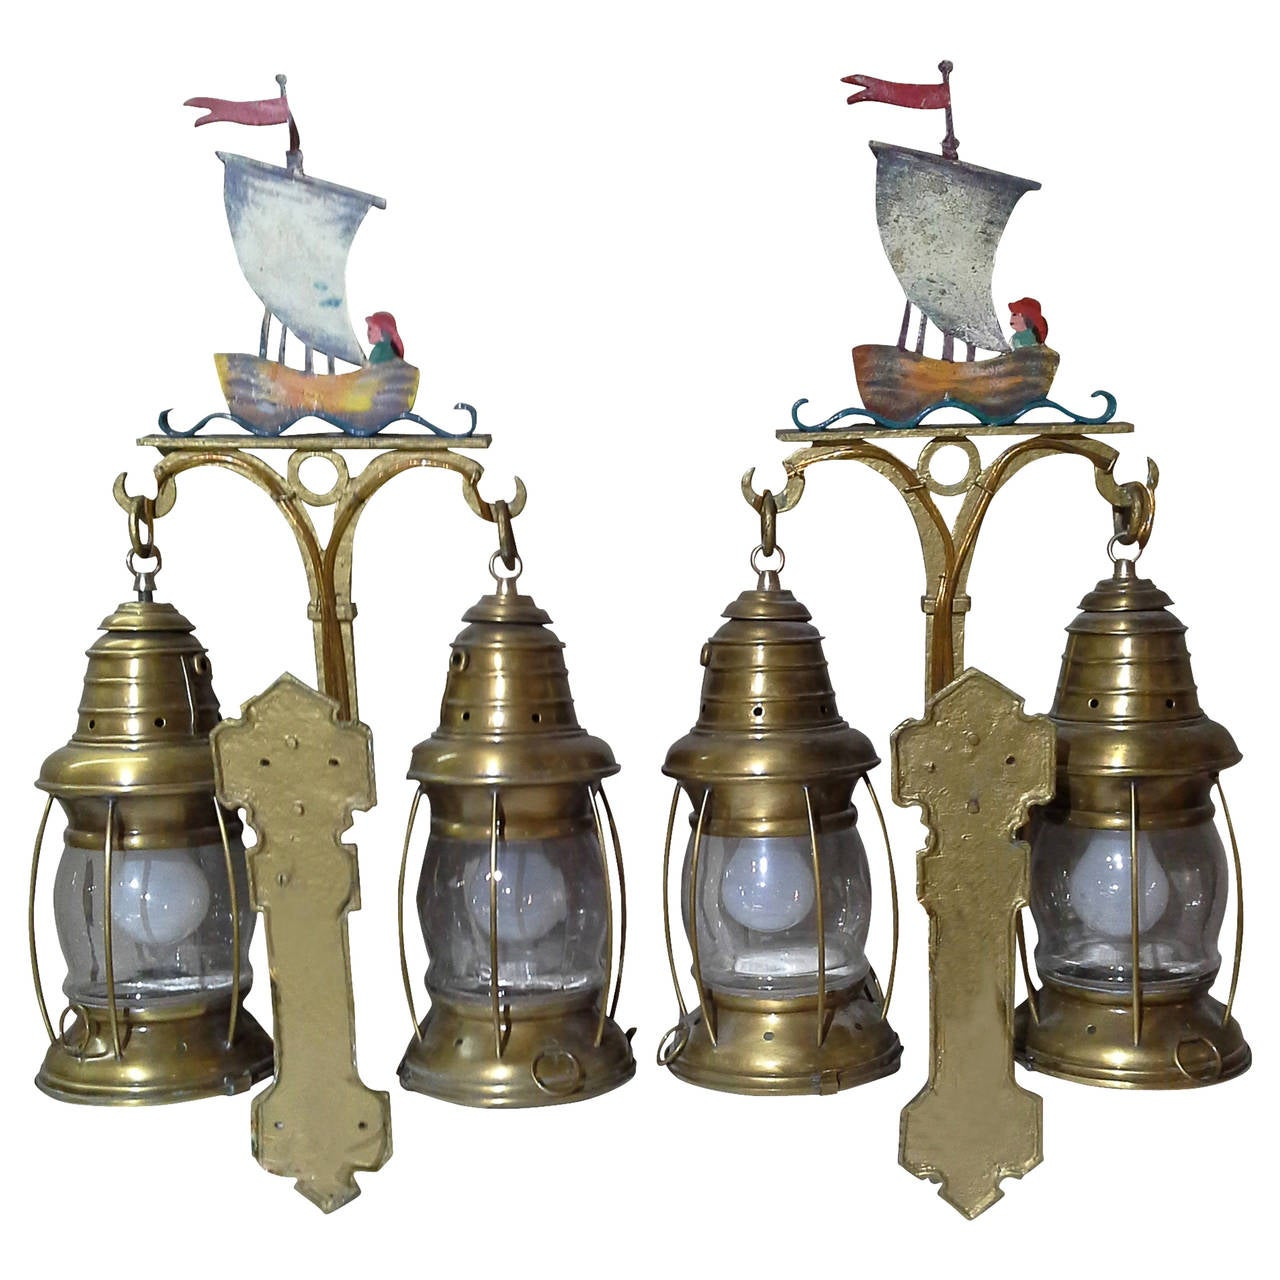 Wall Sconces Nautical: Nautical Lantern Cast Iron Wall Sconces With Sailboat